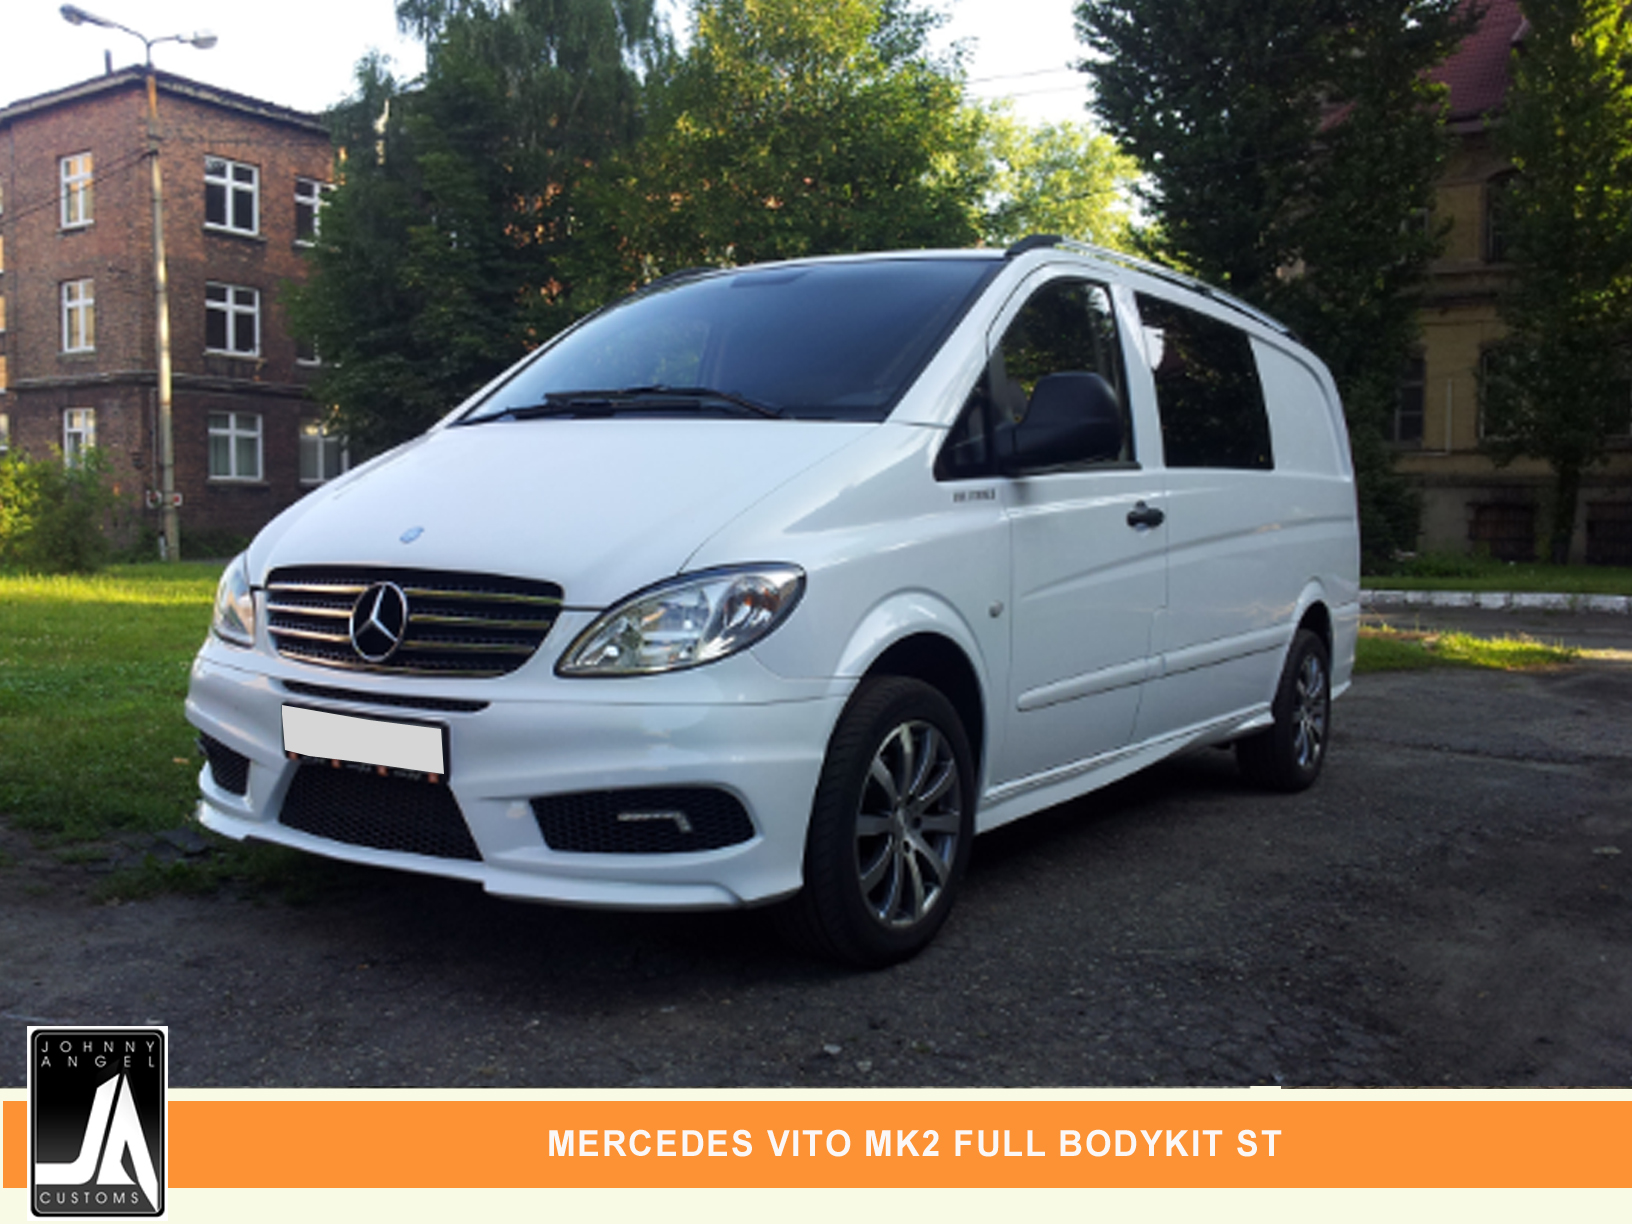 MERCEDES VITO MK2 FULL BODYKIT ST  By Johnny Angel Customs PIC 1